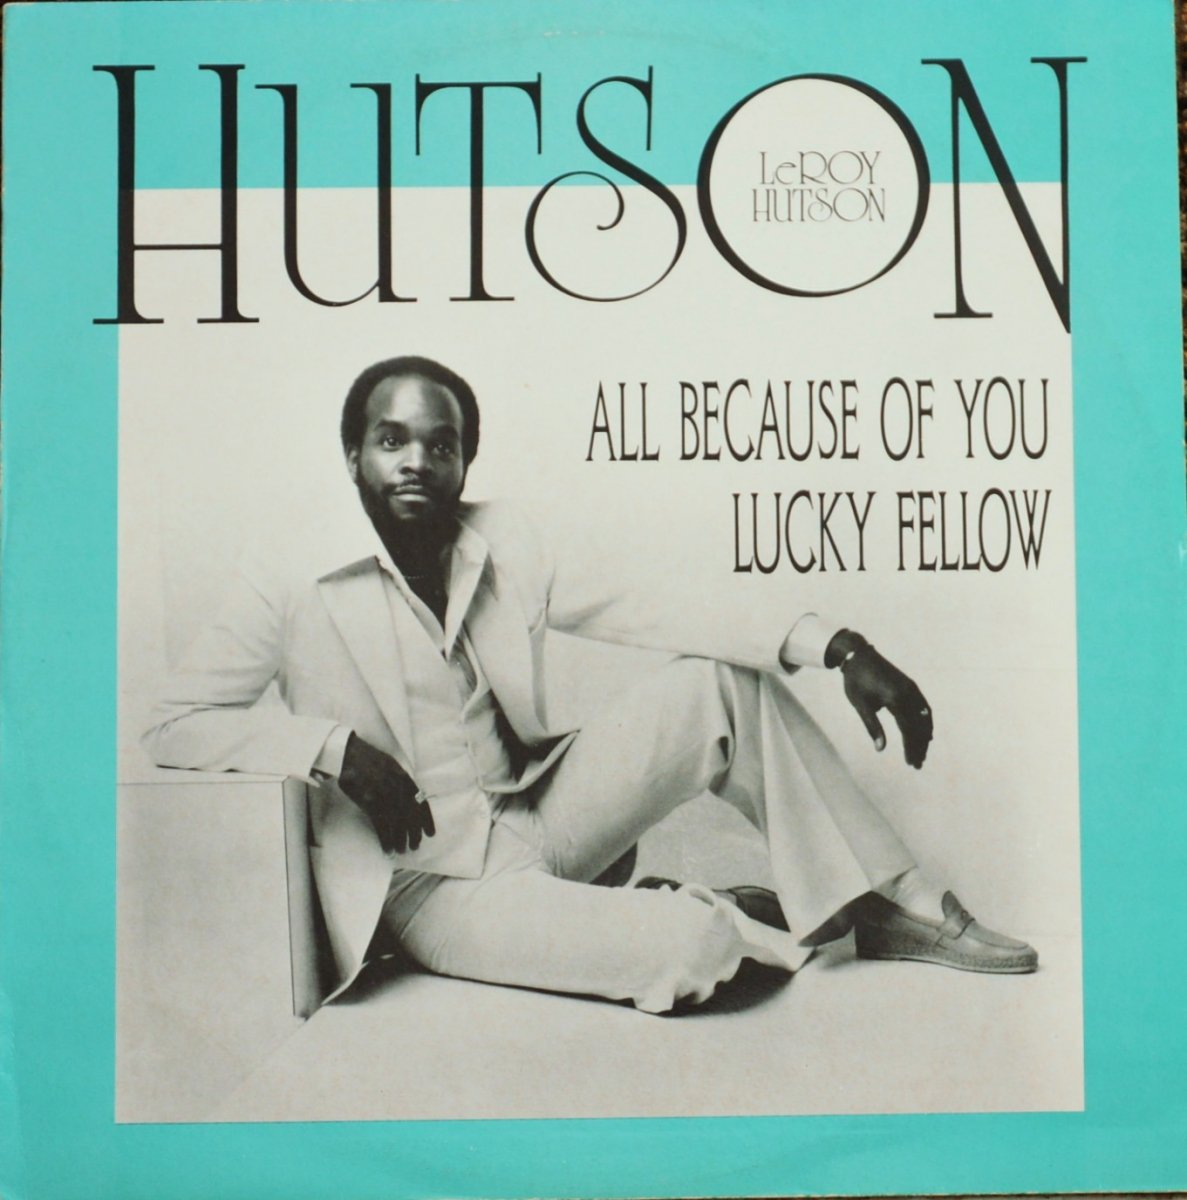 LEROY HUTSON ‎/ ALL BECAUSE OF YOU / LUCKY FELLOW (12